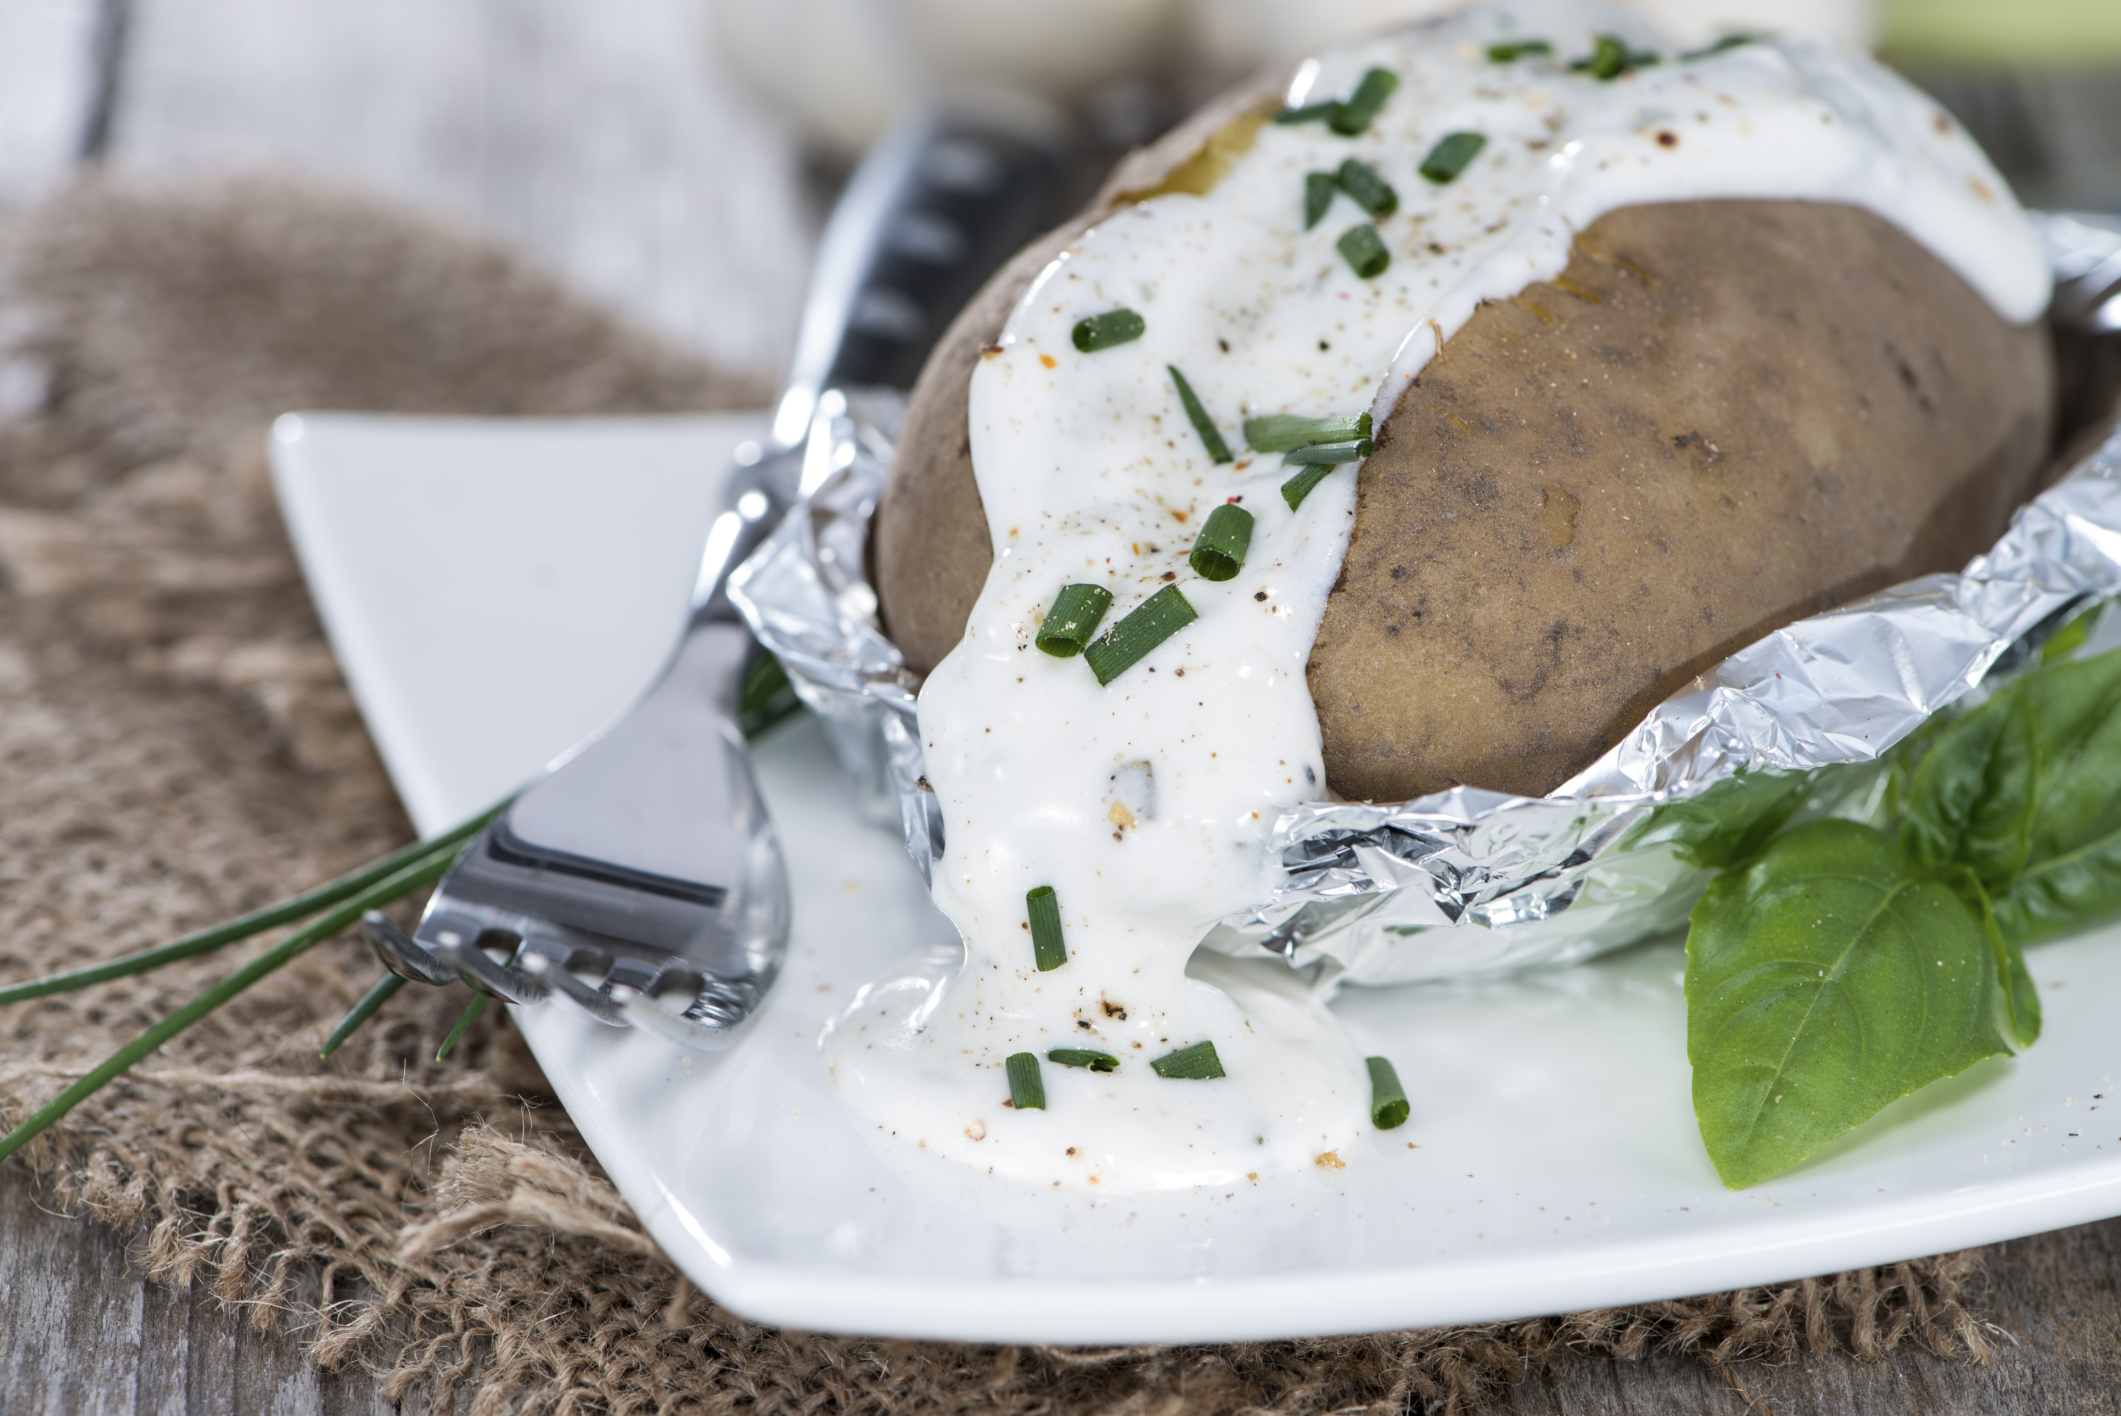 How to bake a potato in a convection oven wrapped in aluminum foil how to bake a potato in a convection oven wrapped in aluminum foil livestrong ccuart Choice Image